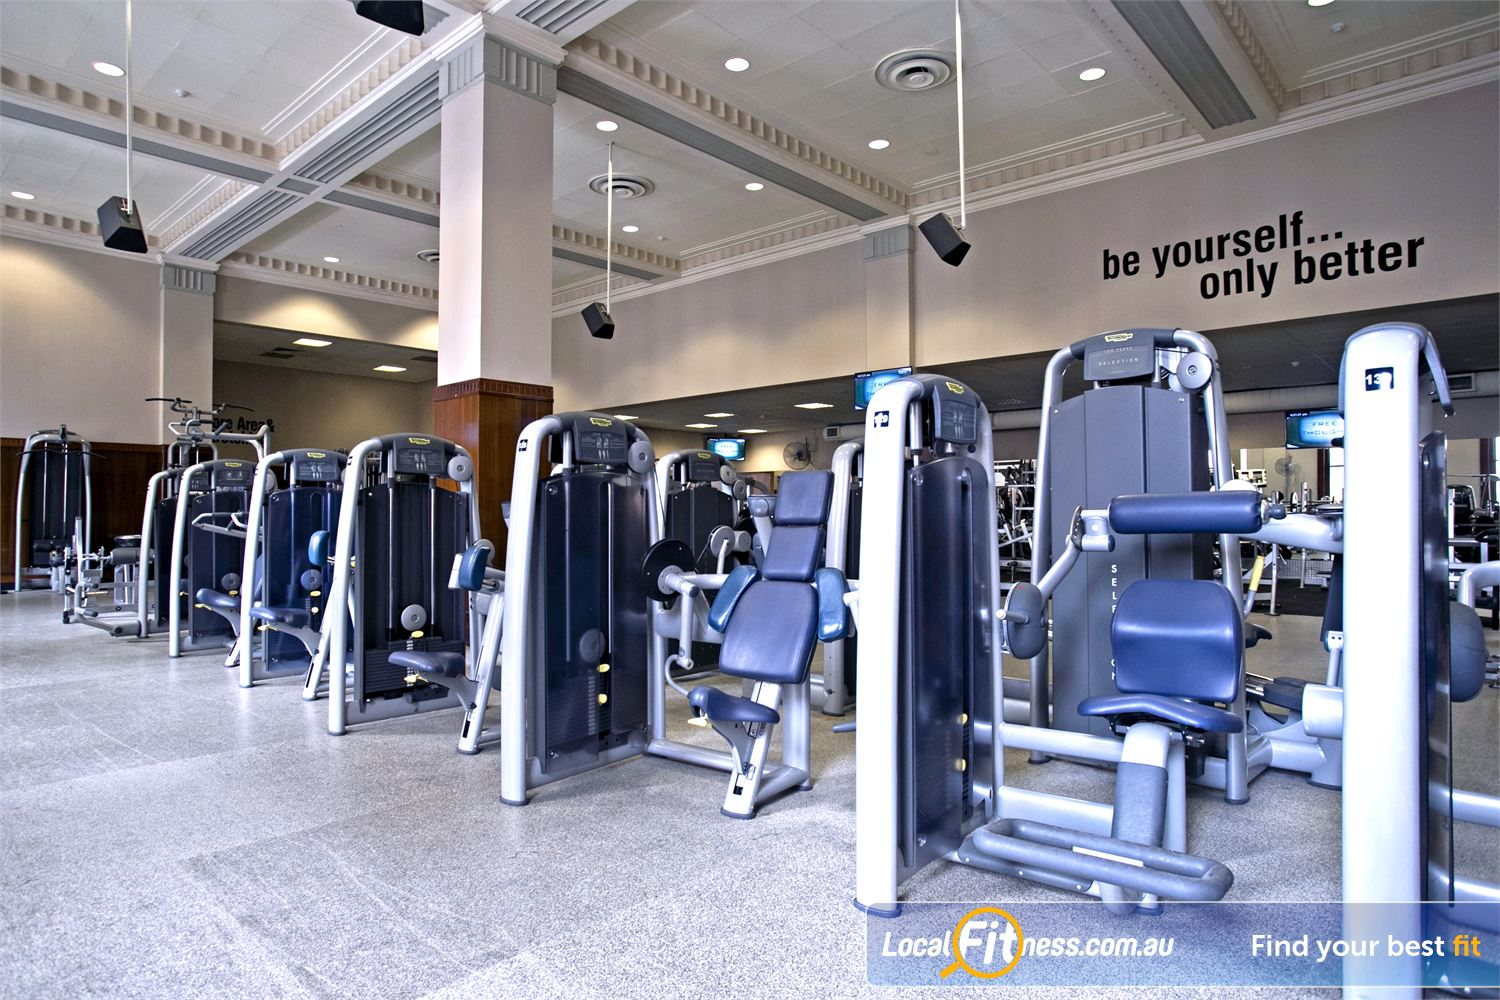 Goodlife Health Clubs Adelaide City Near Adelaide Airport Our Adelaide gym features marble floors and state of the art pin-loaded equipment.